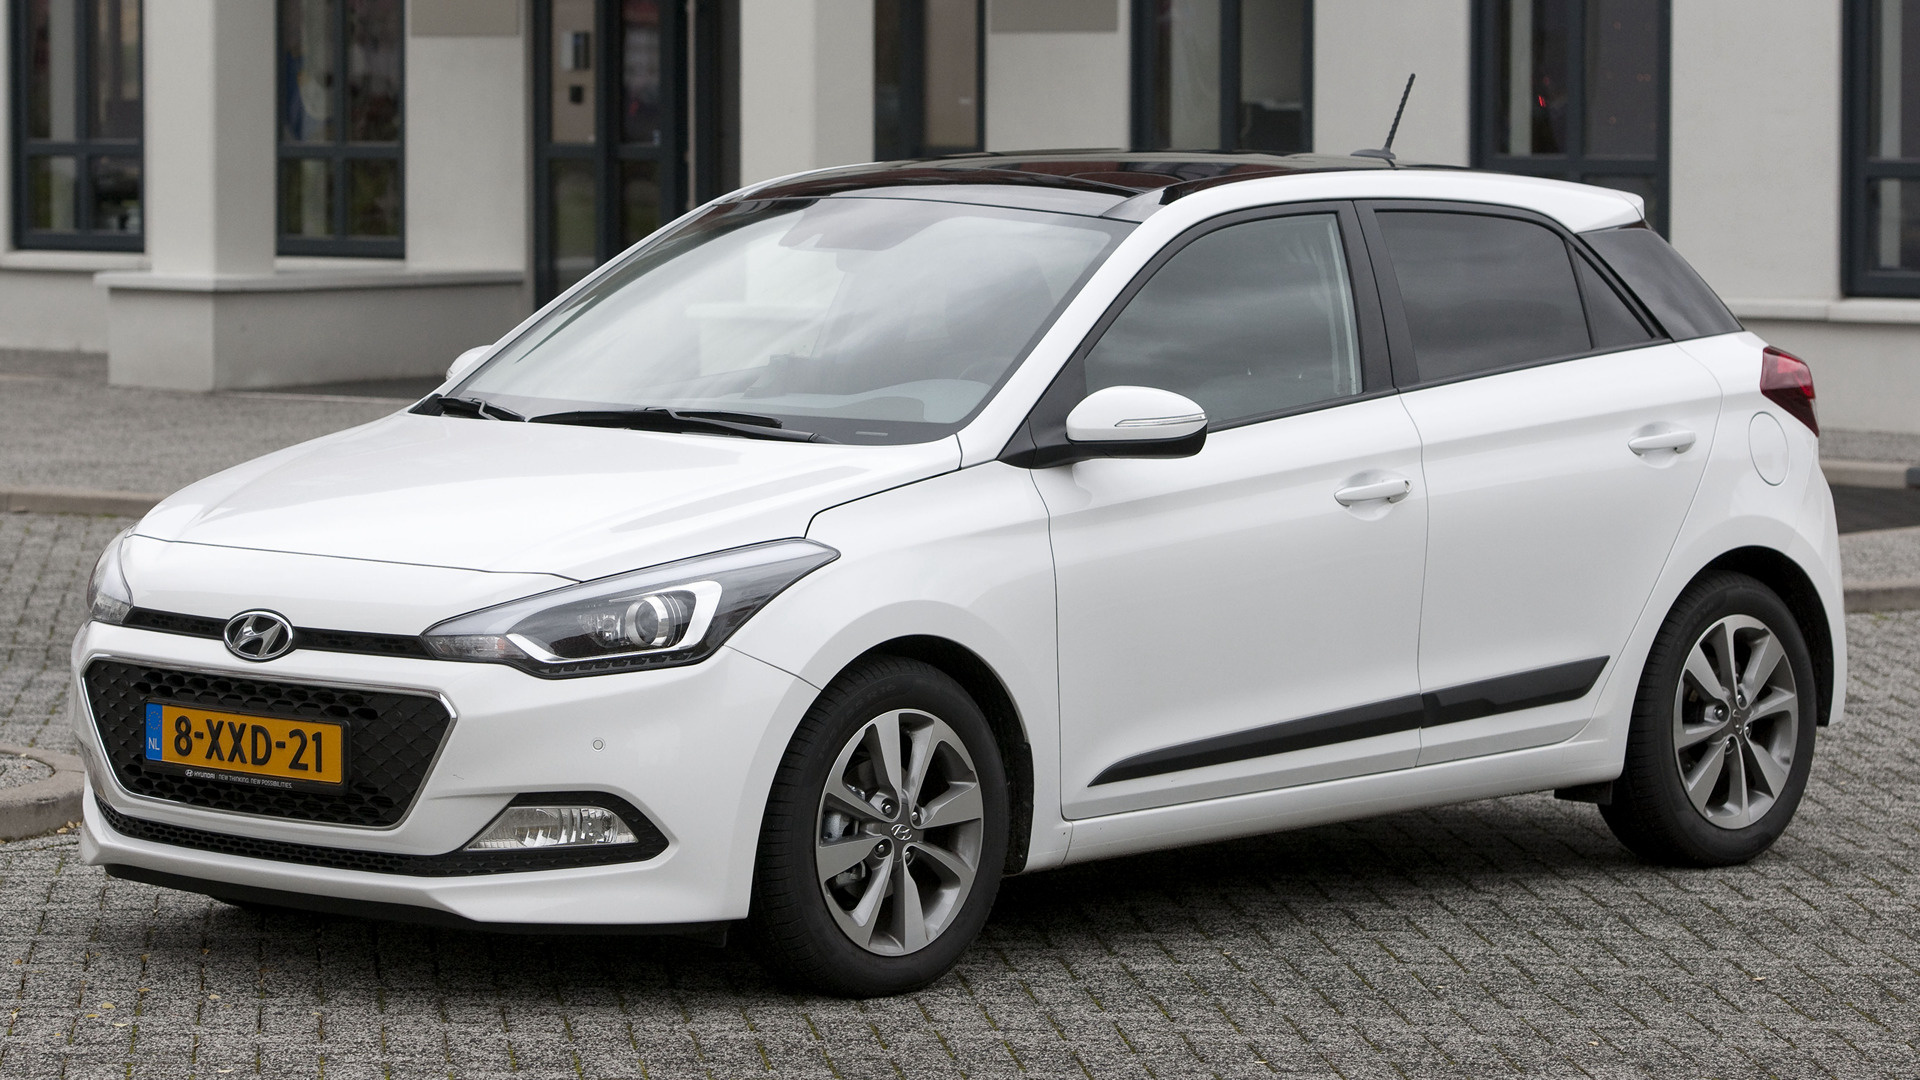 Hyundai i20 blue 2014 wallpapers and hd images car pixel